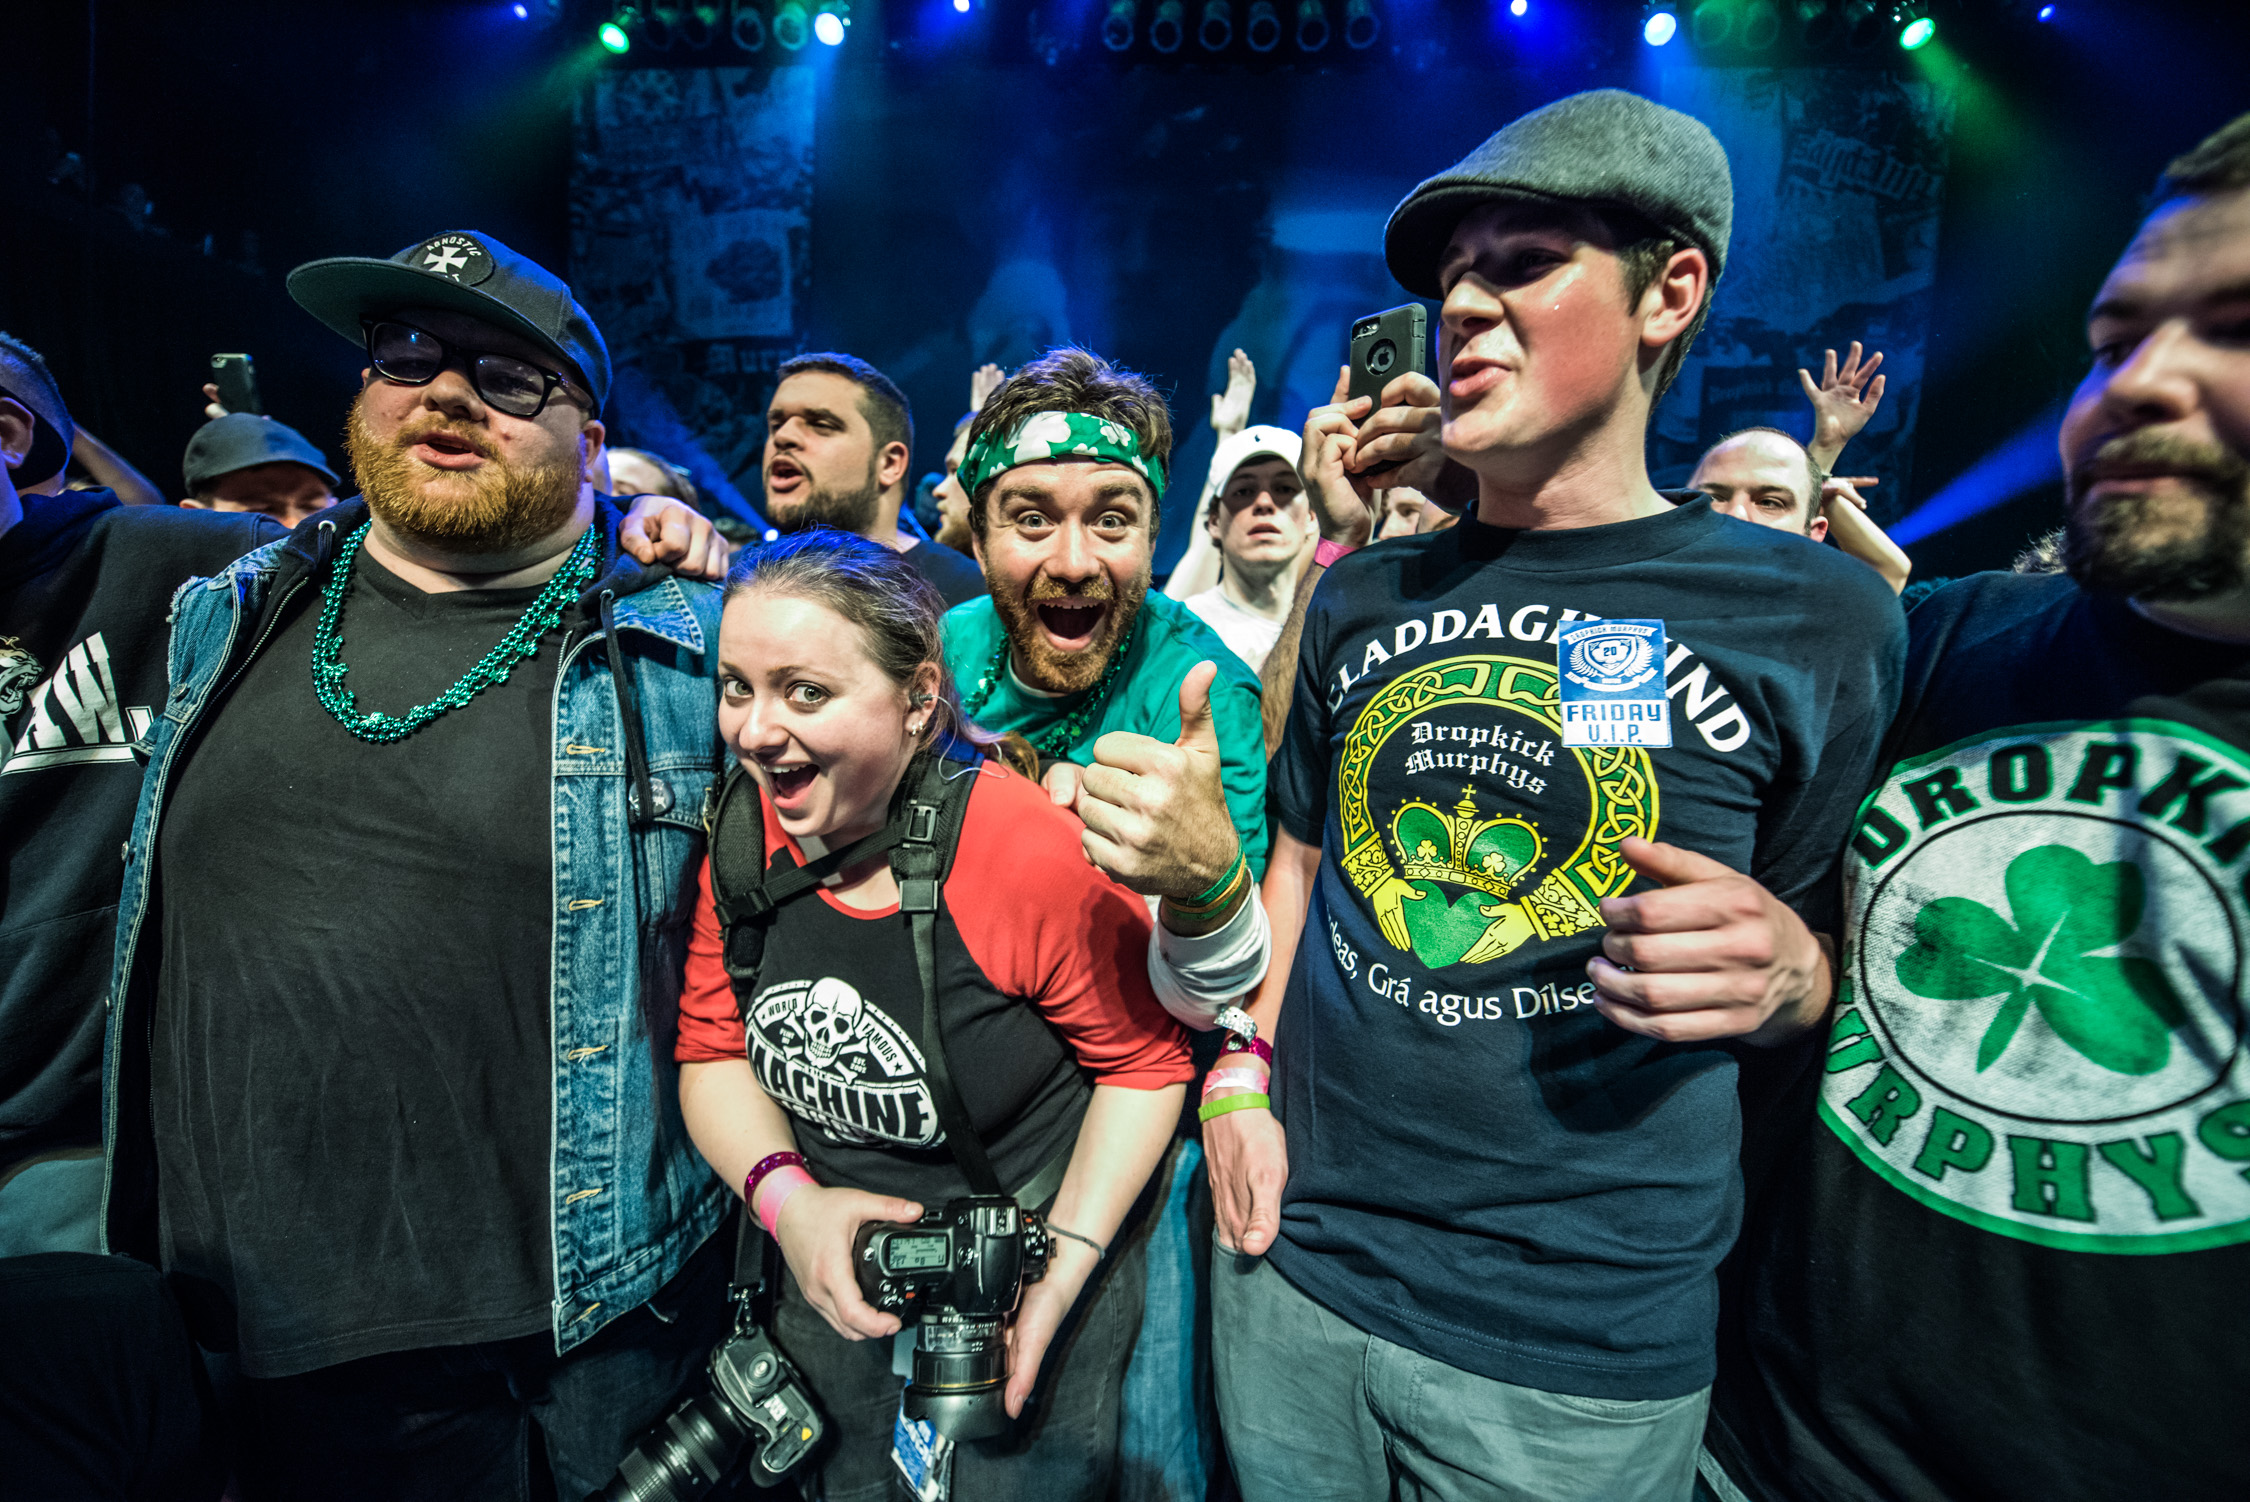 Dropkick Murphys HOB Boston Gregory Nolan 04.18.16 -141.jpg